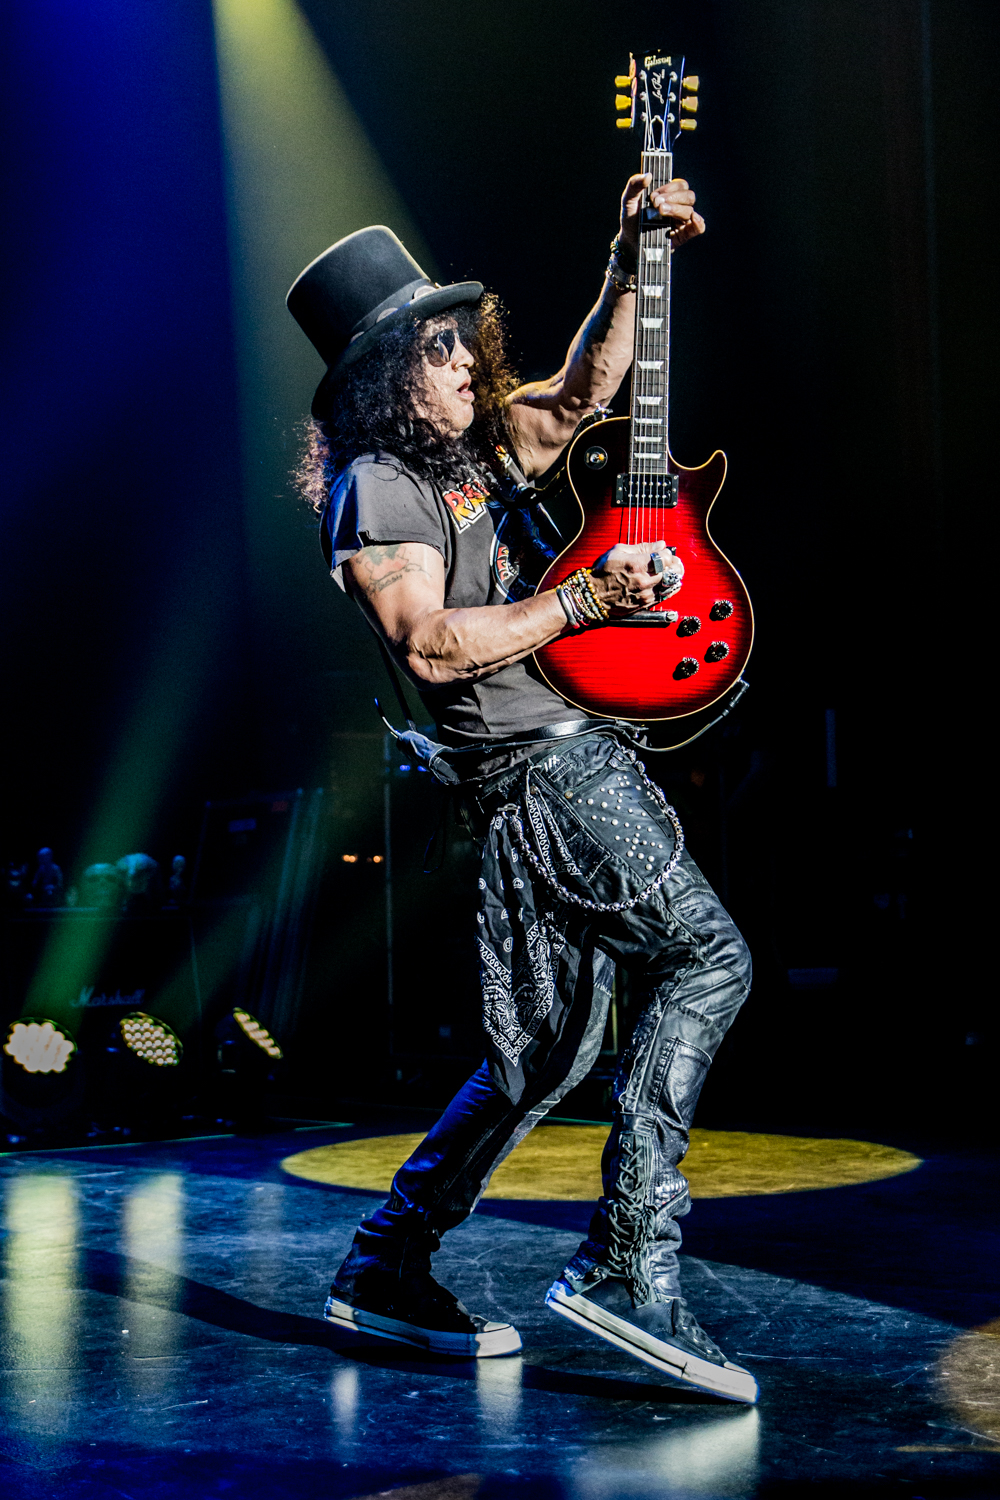 20190223_Slash ft. Myles Kennedy and The Conspirators_Koninklijk Circus-9